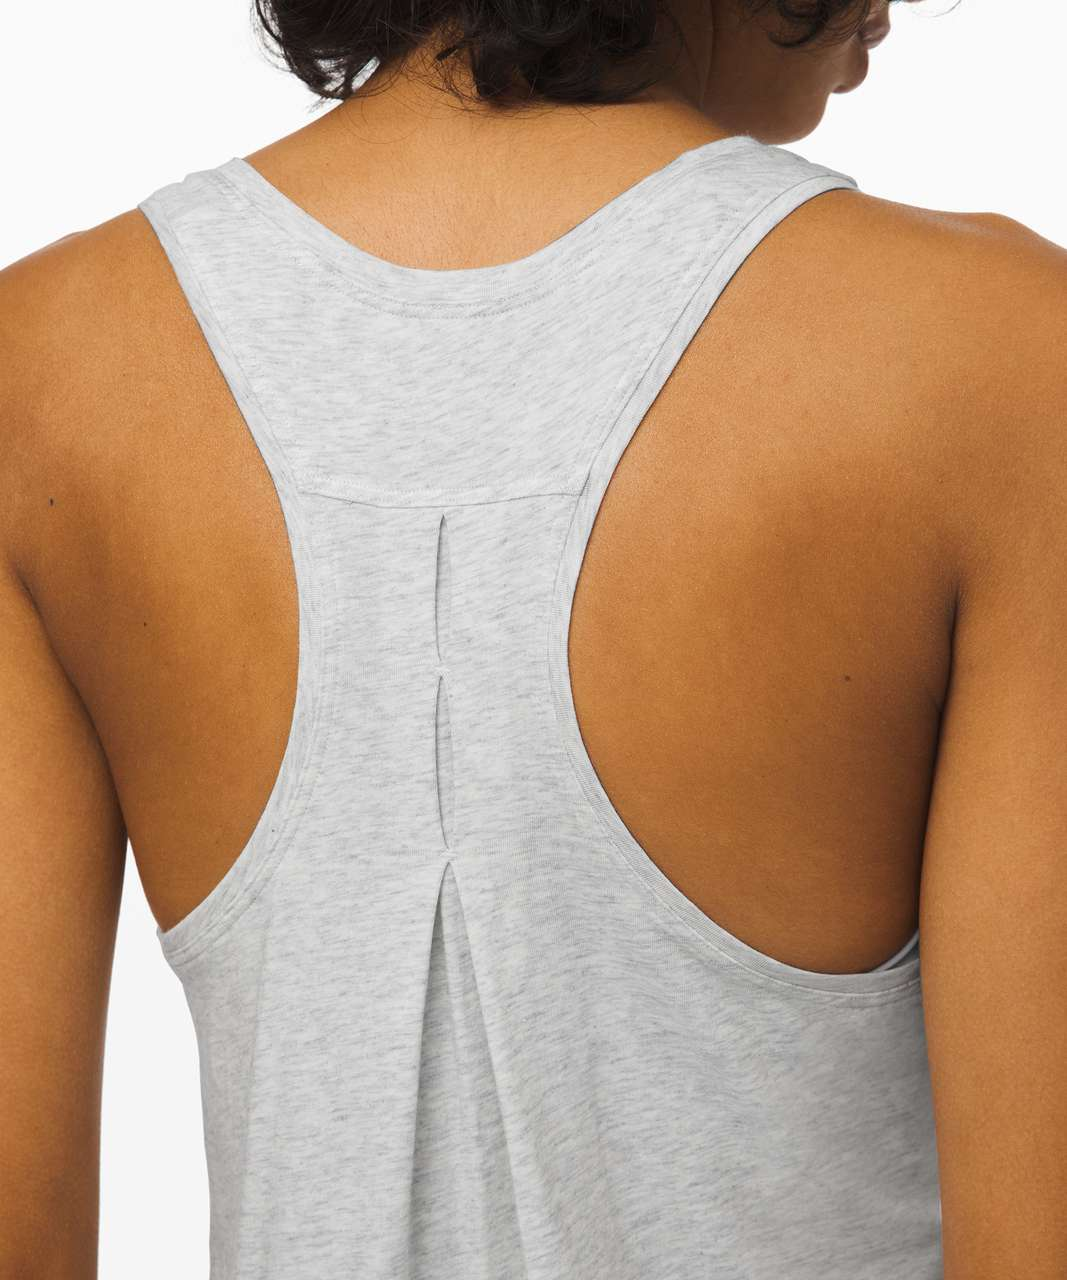 Lululemon Love Tank *Pleated - Heathered Core Ultra Light Grey